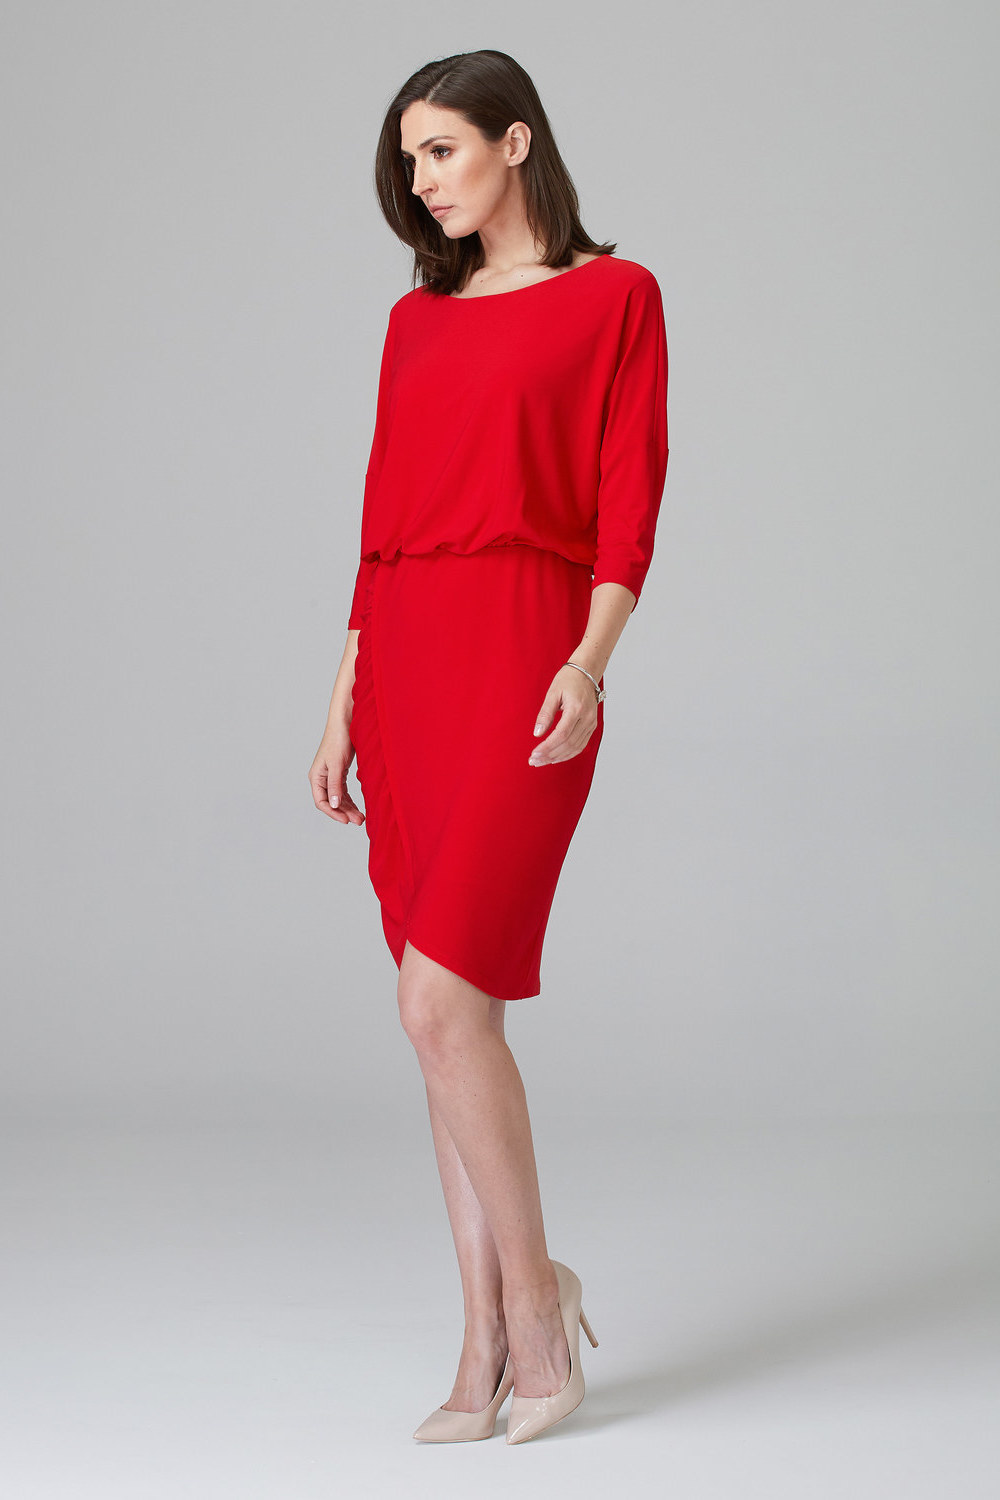 Joseph Ribkoff Robes Rouge A Levres 173 Style 201214